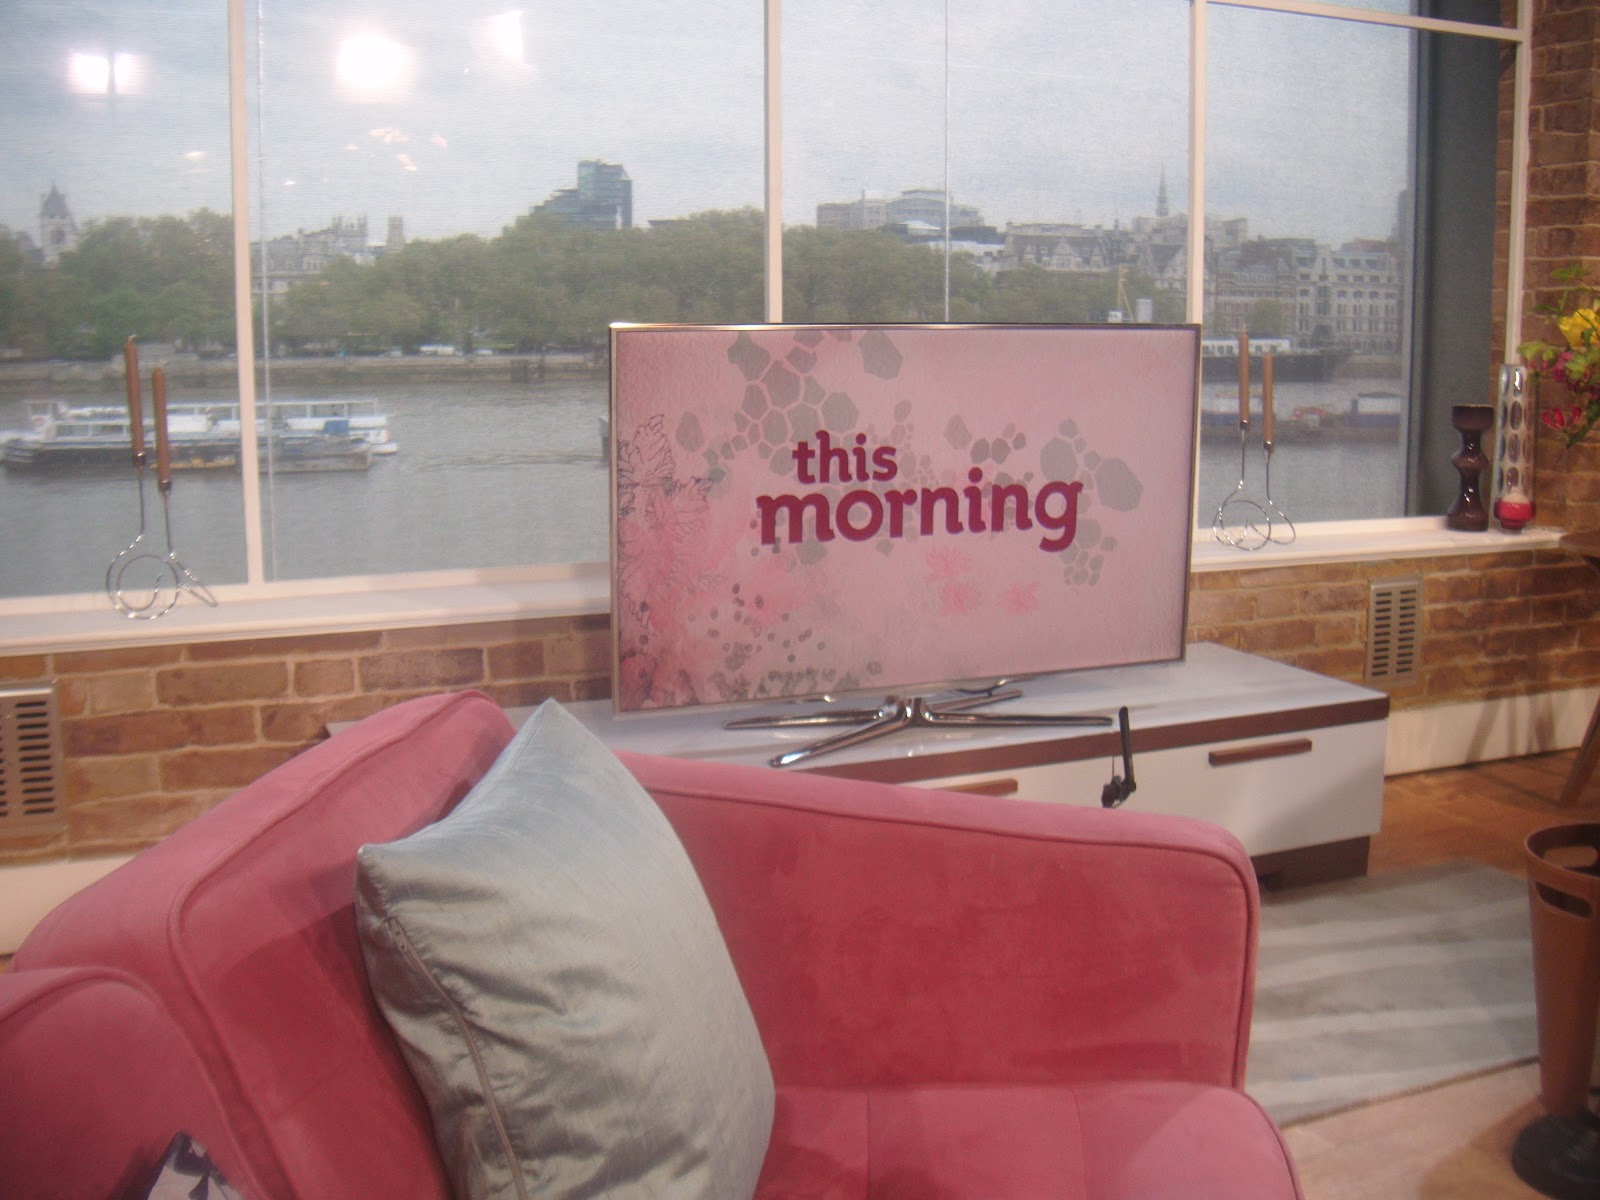 itv this morning dating 11 pictures of lucy the inappropriate weather girl verasamy you fell in love with lucy verasamy this morning, now do it 11 more times.